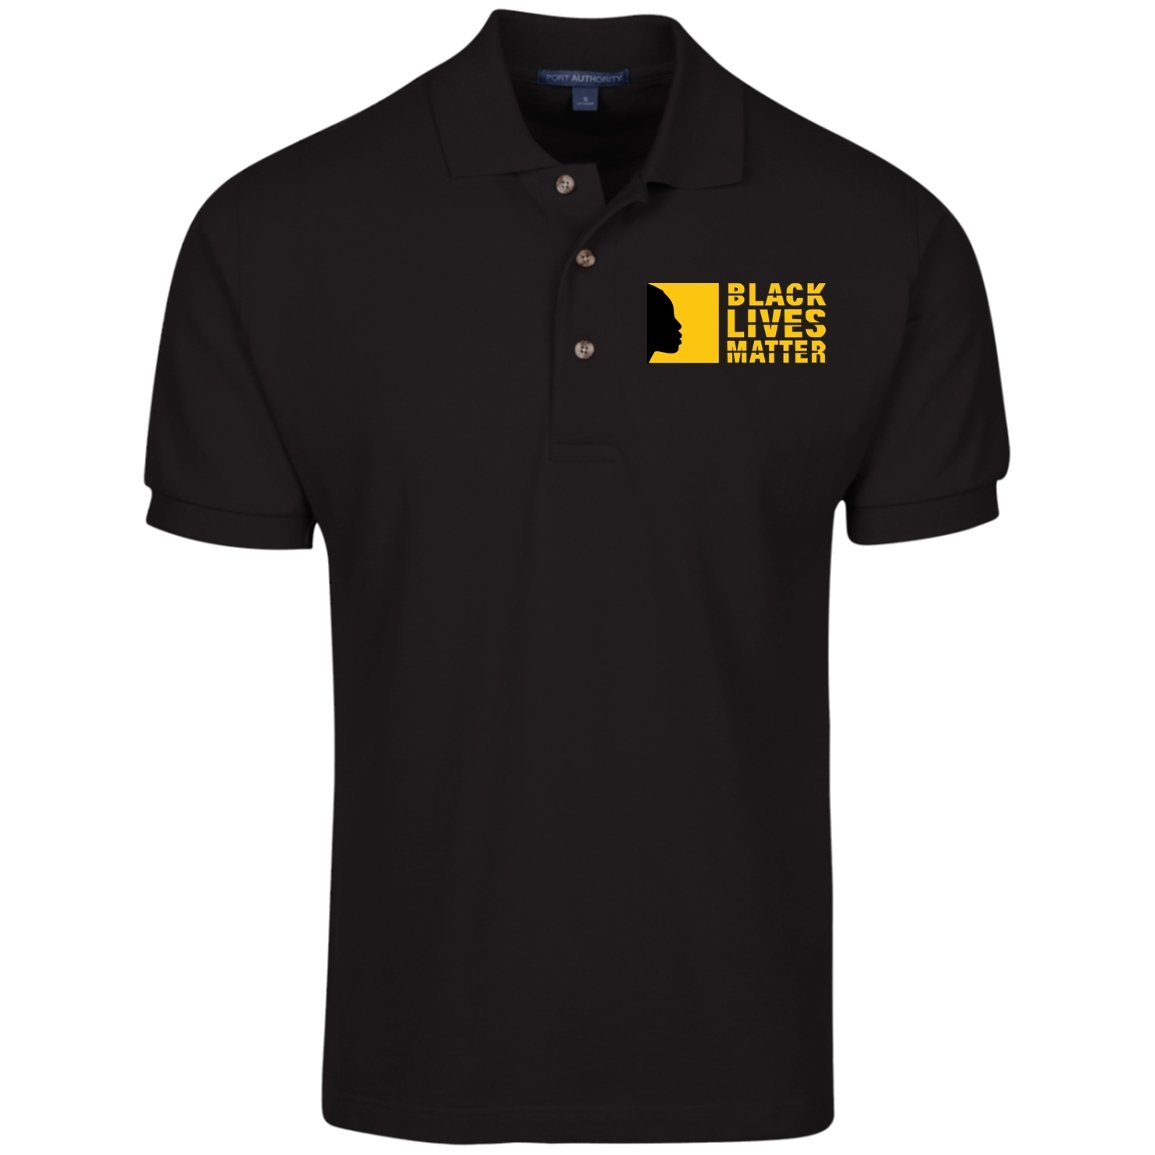 Black Lives Matter Embroidered Polo Shirt - Sugar Streetwear